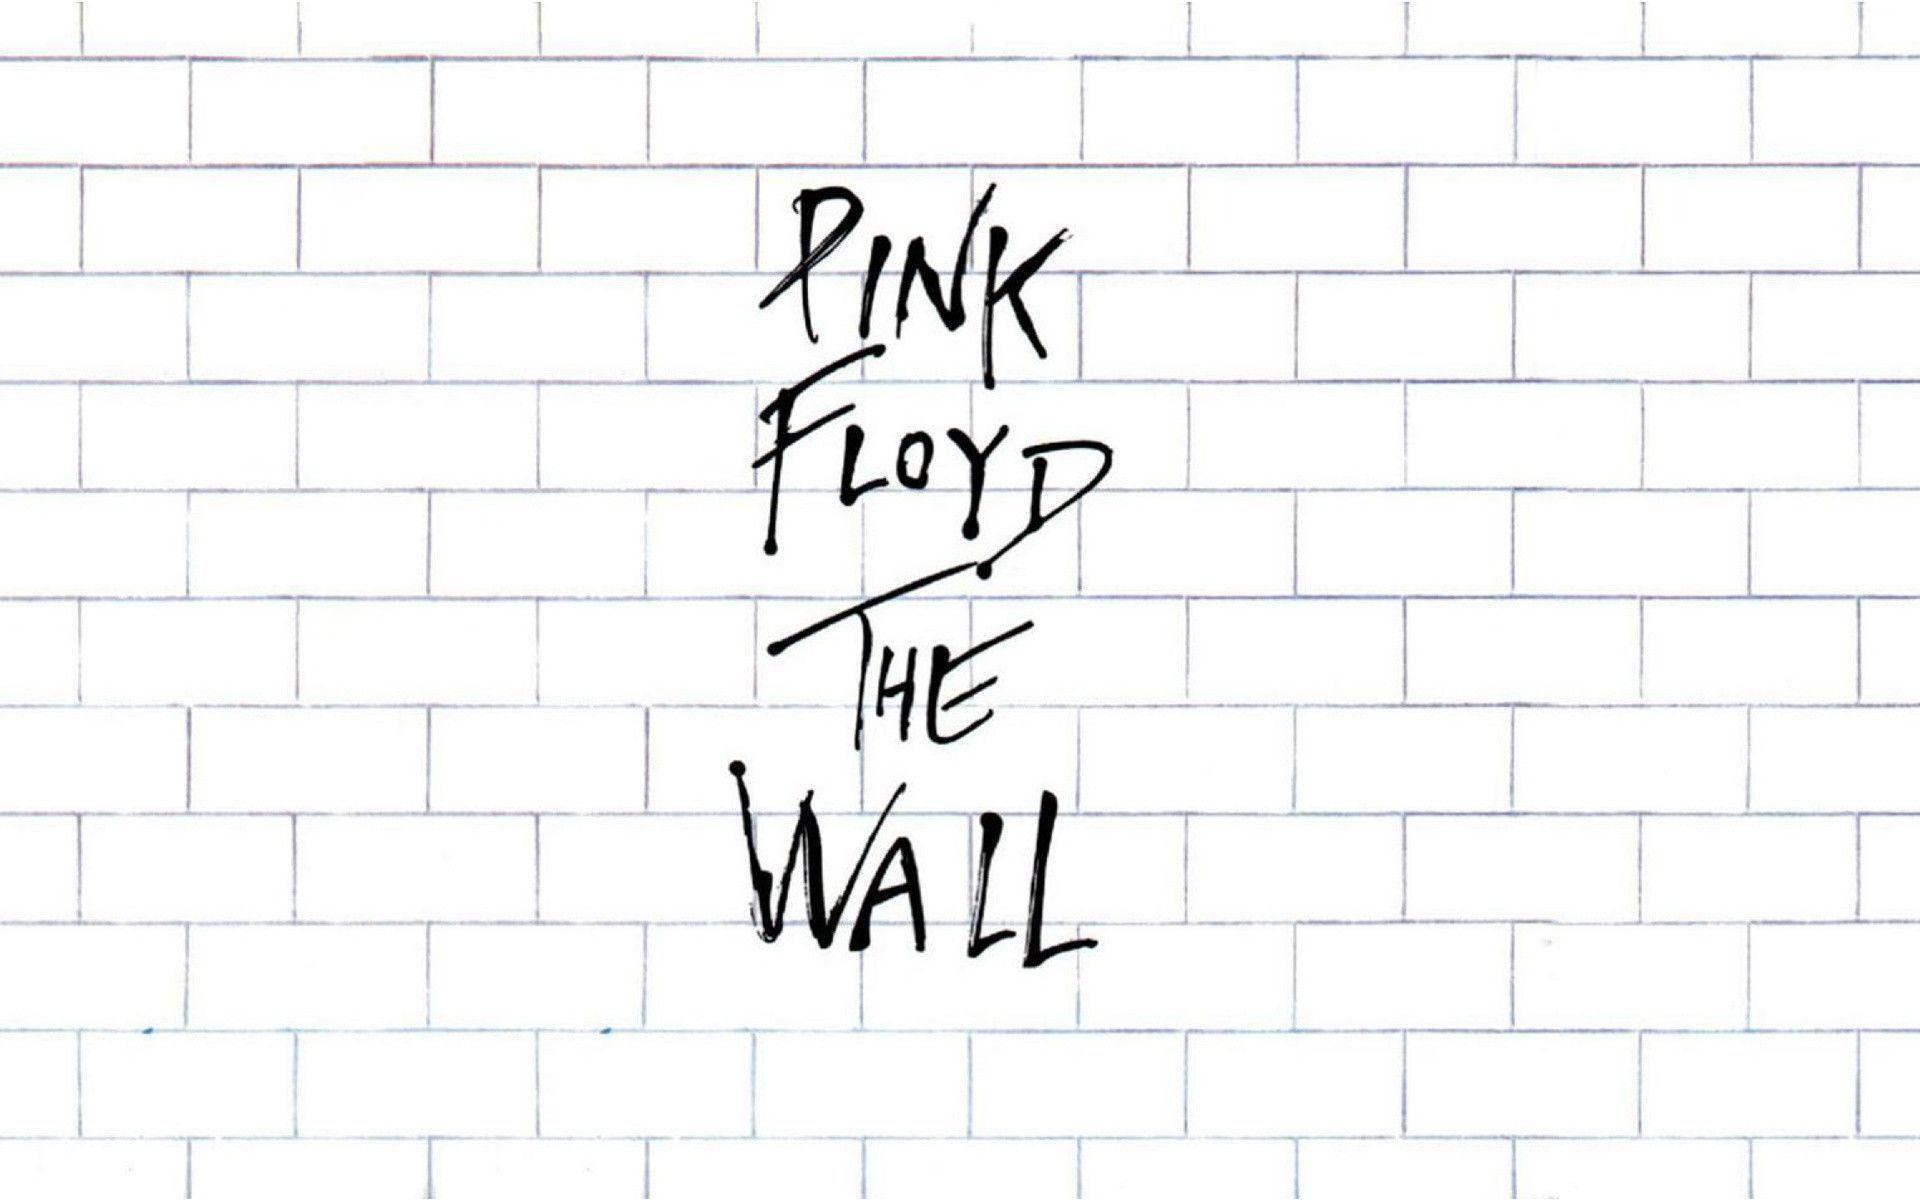 The wall wallpaper